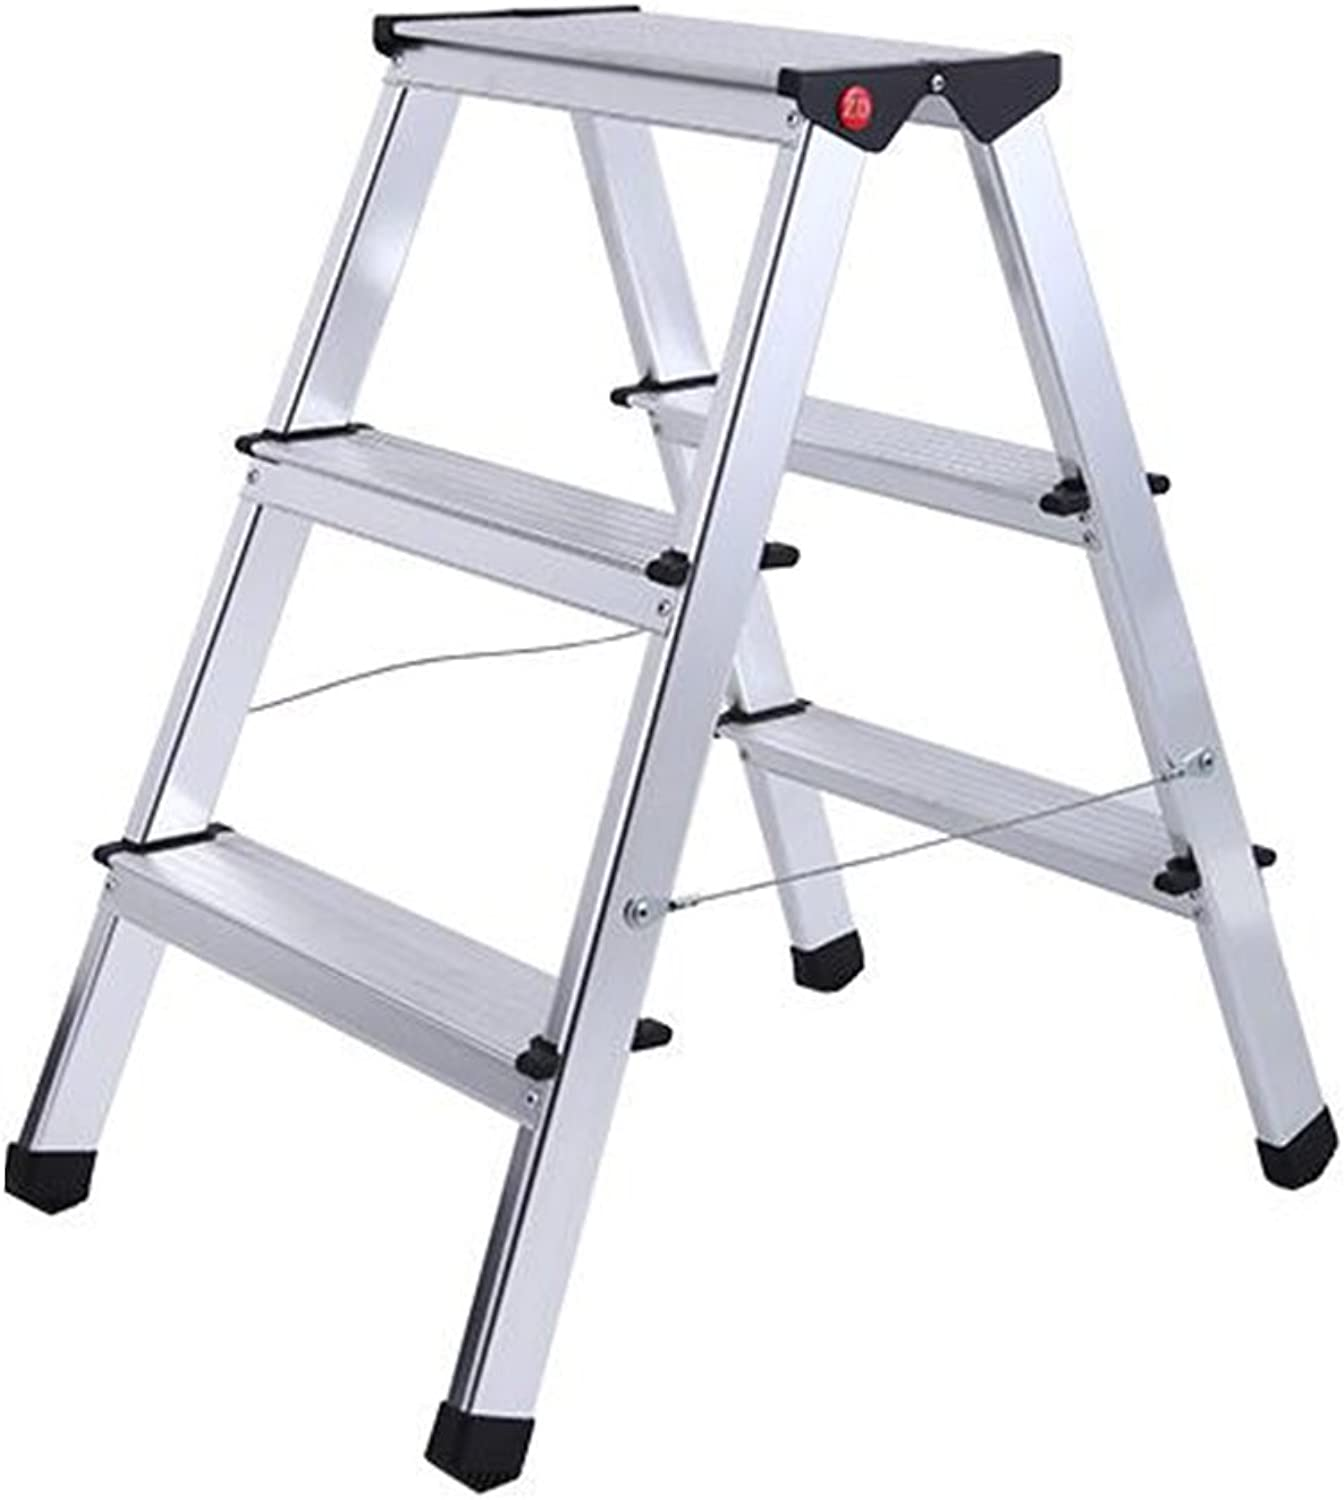 DINJUEN 3-step folding ladder aluminum home small ladder stool multifunctional indoor stairs Utility stool